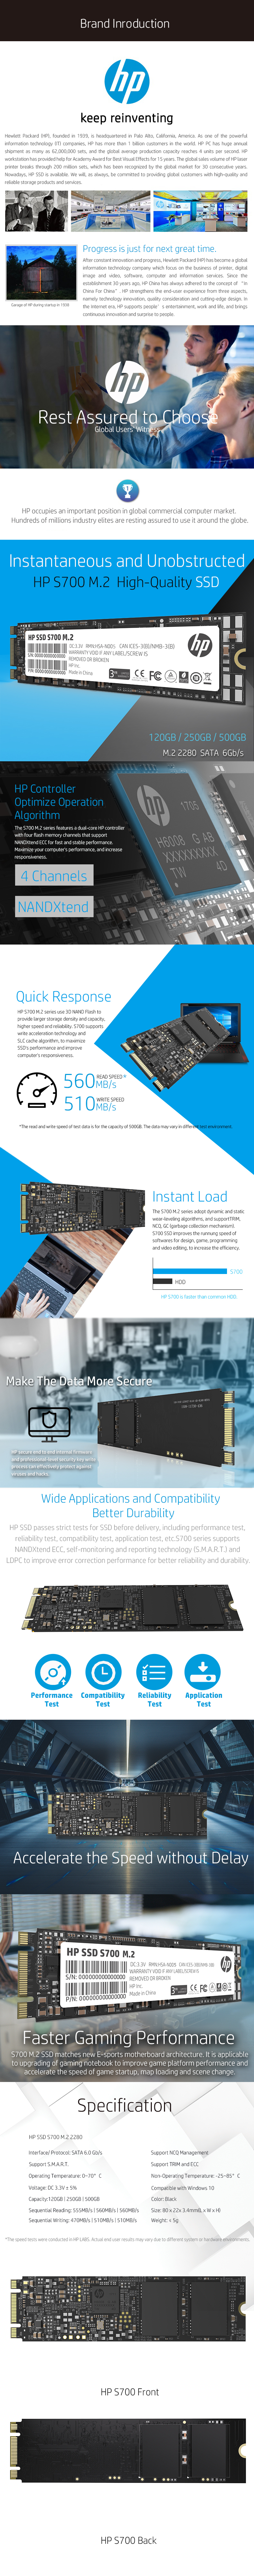 HP SSD S700 M.2 250gb solid state drive, View HP SSD, HP Product ...